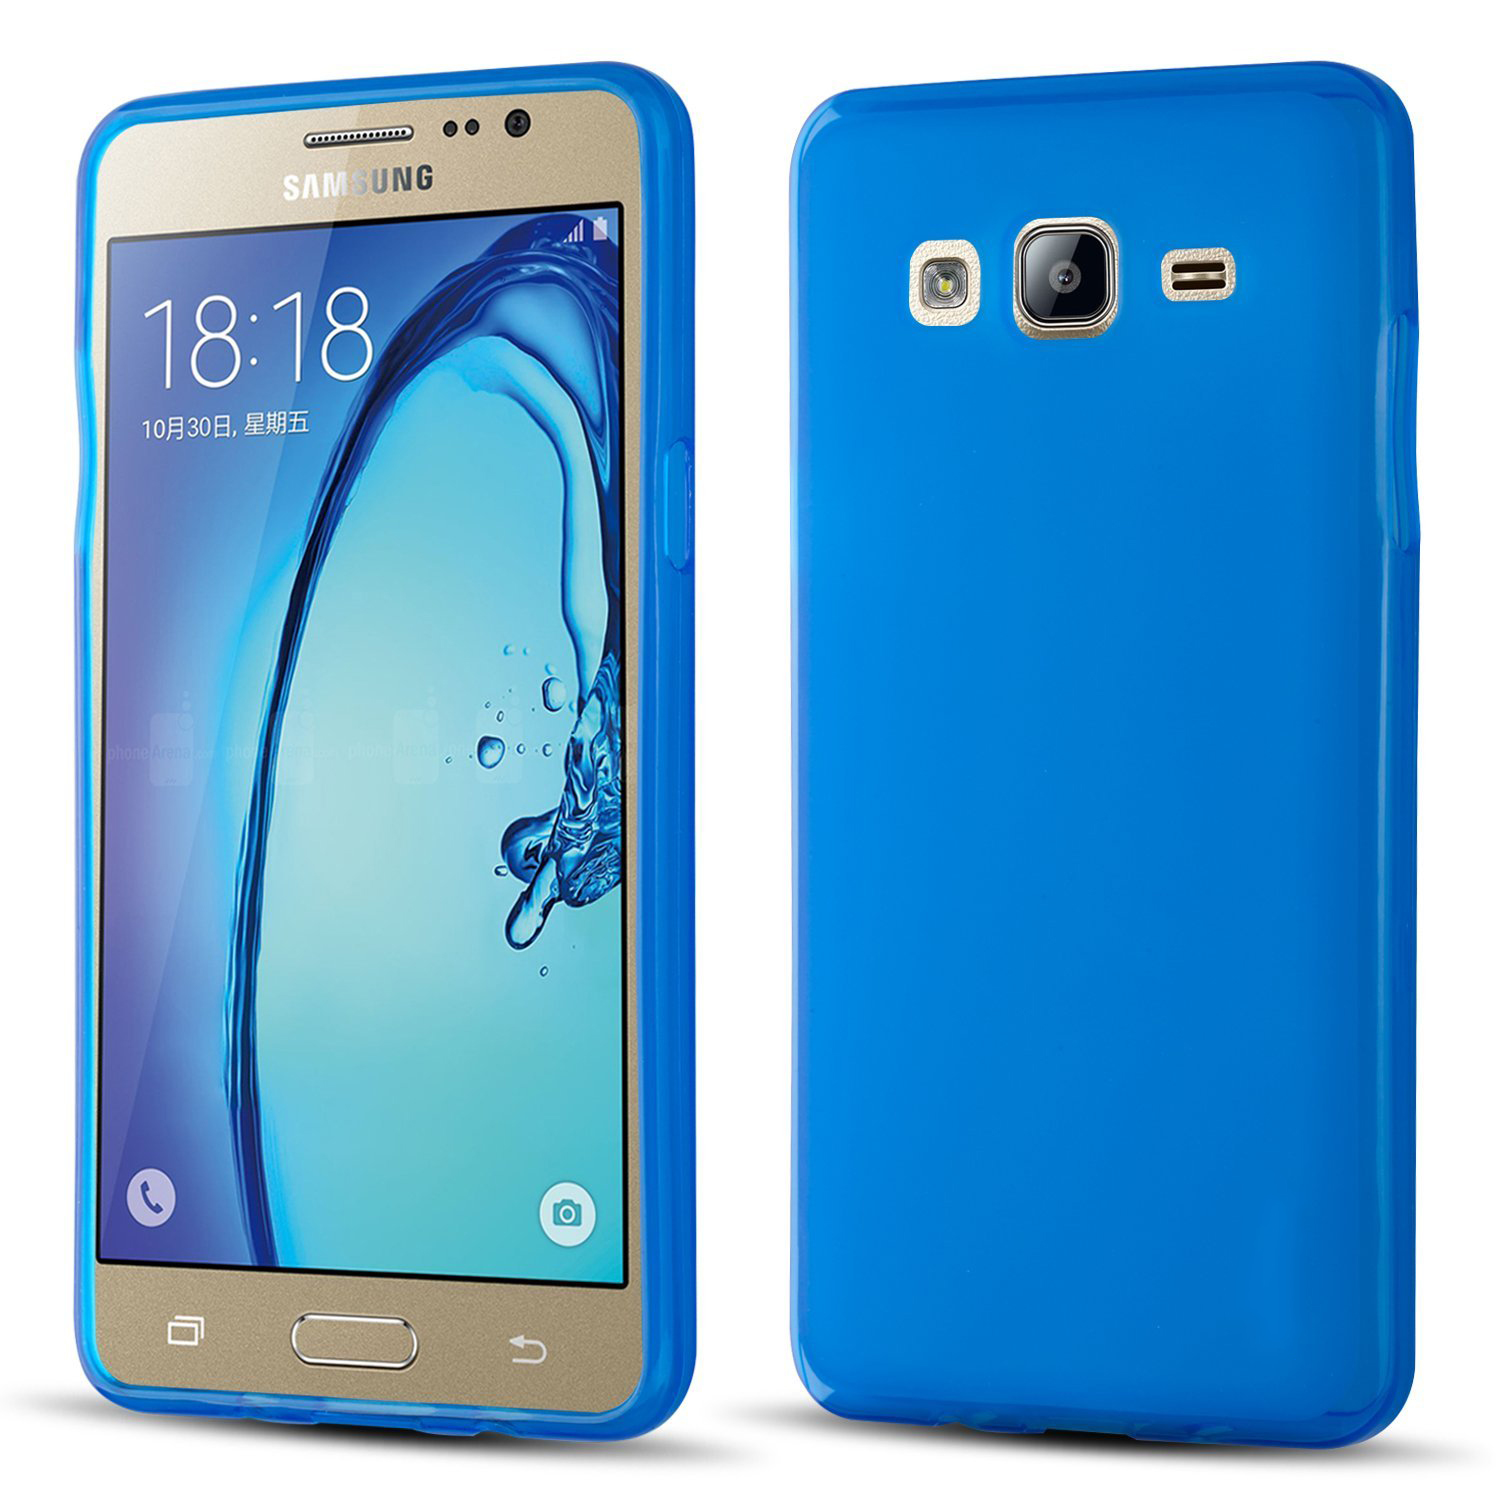 Samsung Galaxy On5 Case, Slim & Flexible Anti-shock Crystal Silicone Protective TPU Gel Skin Case Cover [Blue] with Travel Wallet Phone Stand